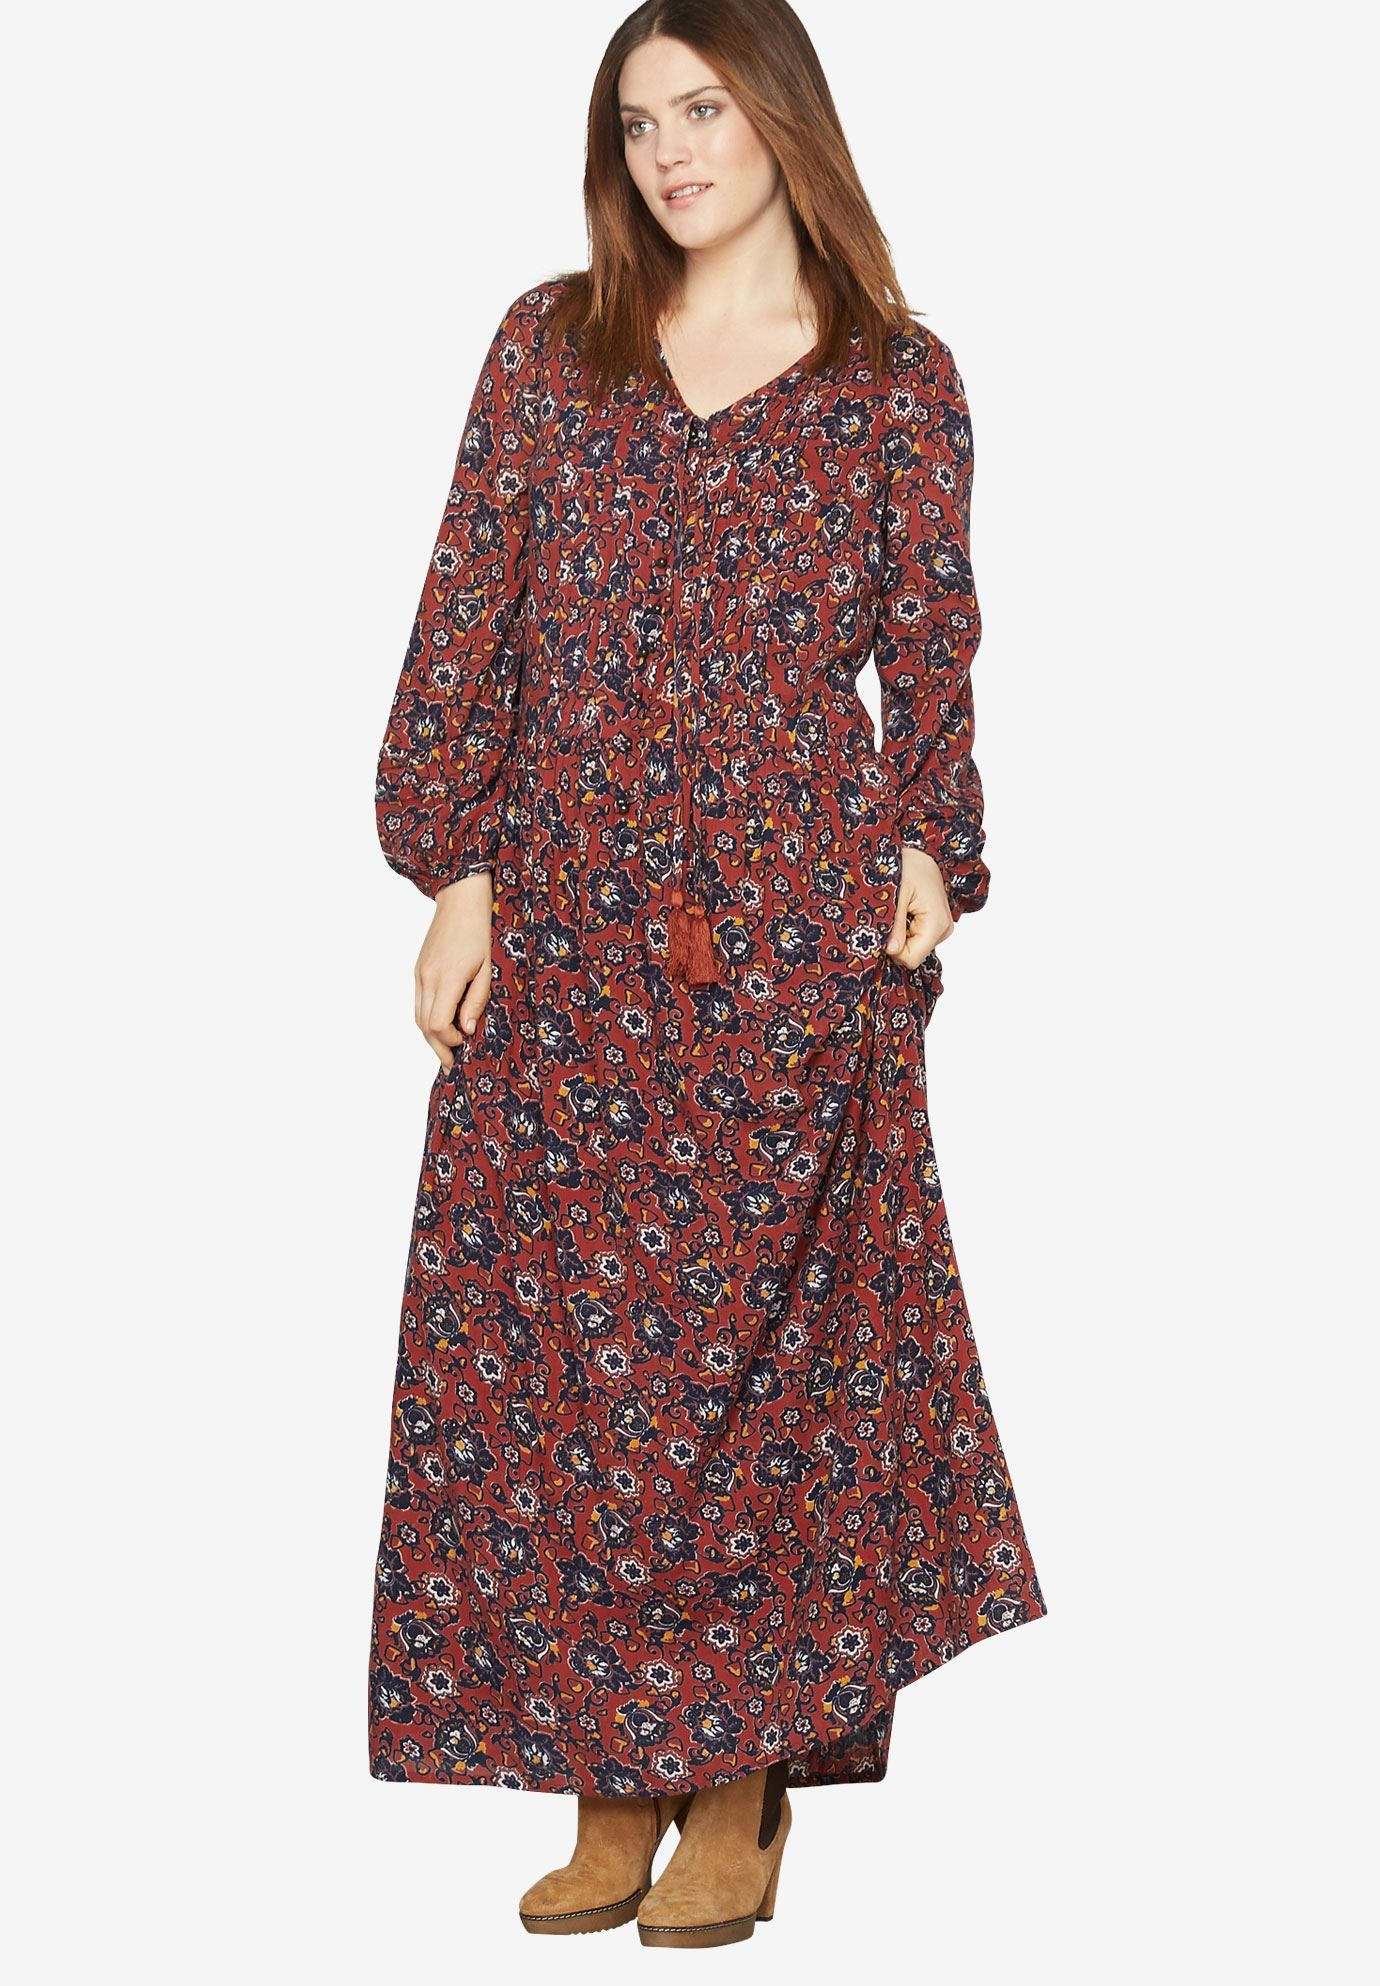 7b04a880e9a Shop for Print Maxi Dress By Castaluna and more Plus Size Maxi Dresses from  fullbeauty. Your Online Fashion Mall for Sizes 12W to 44W